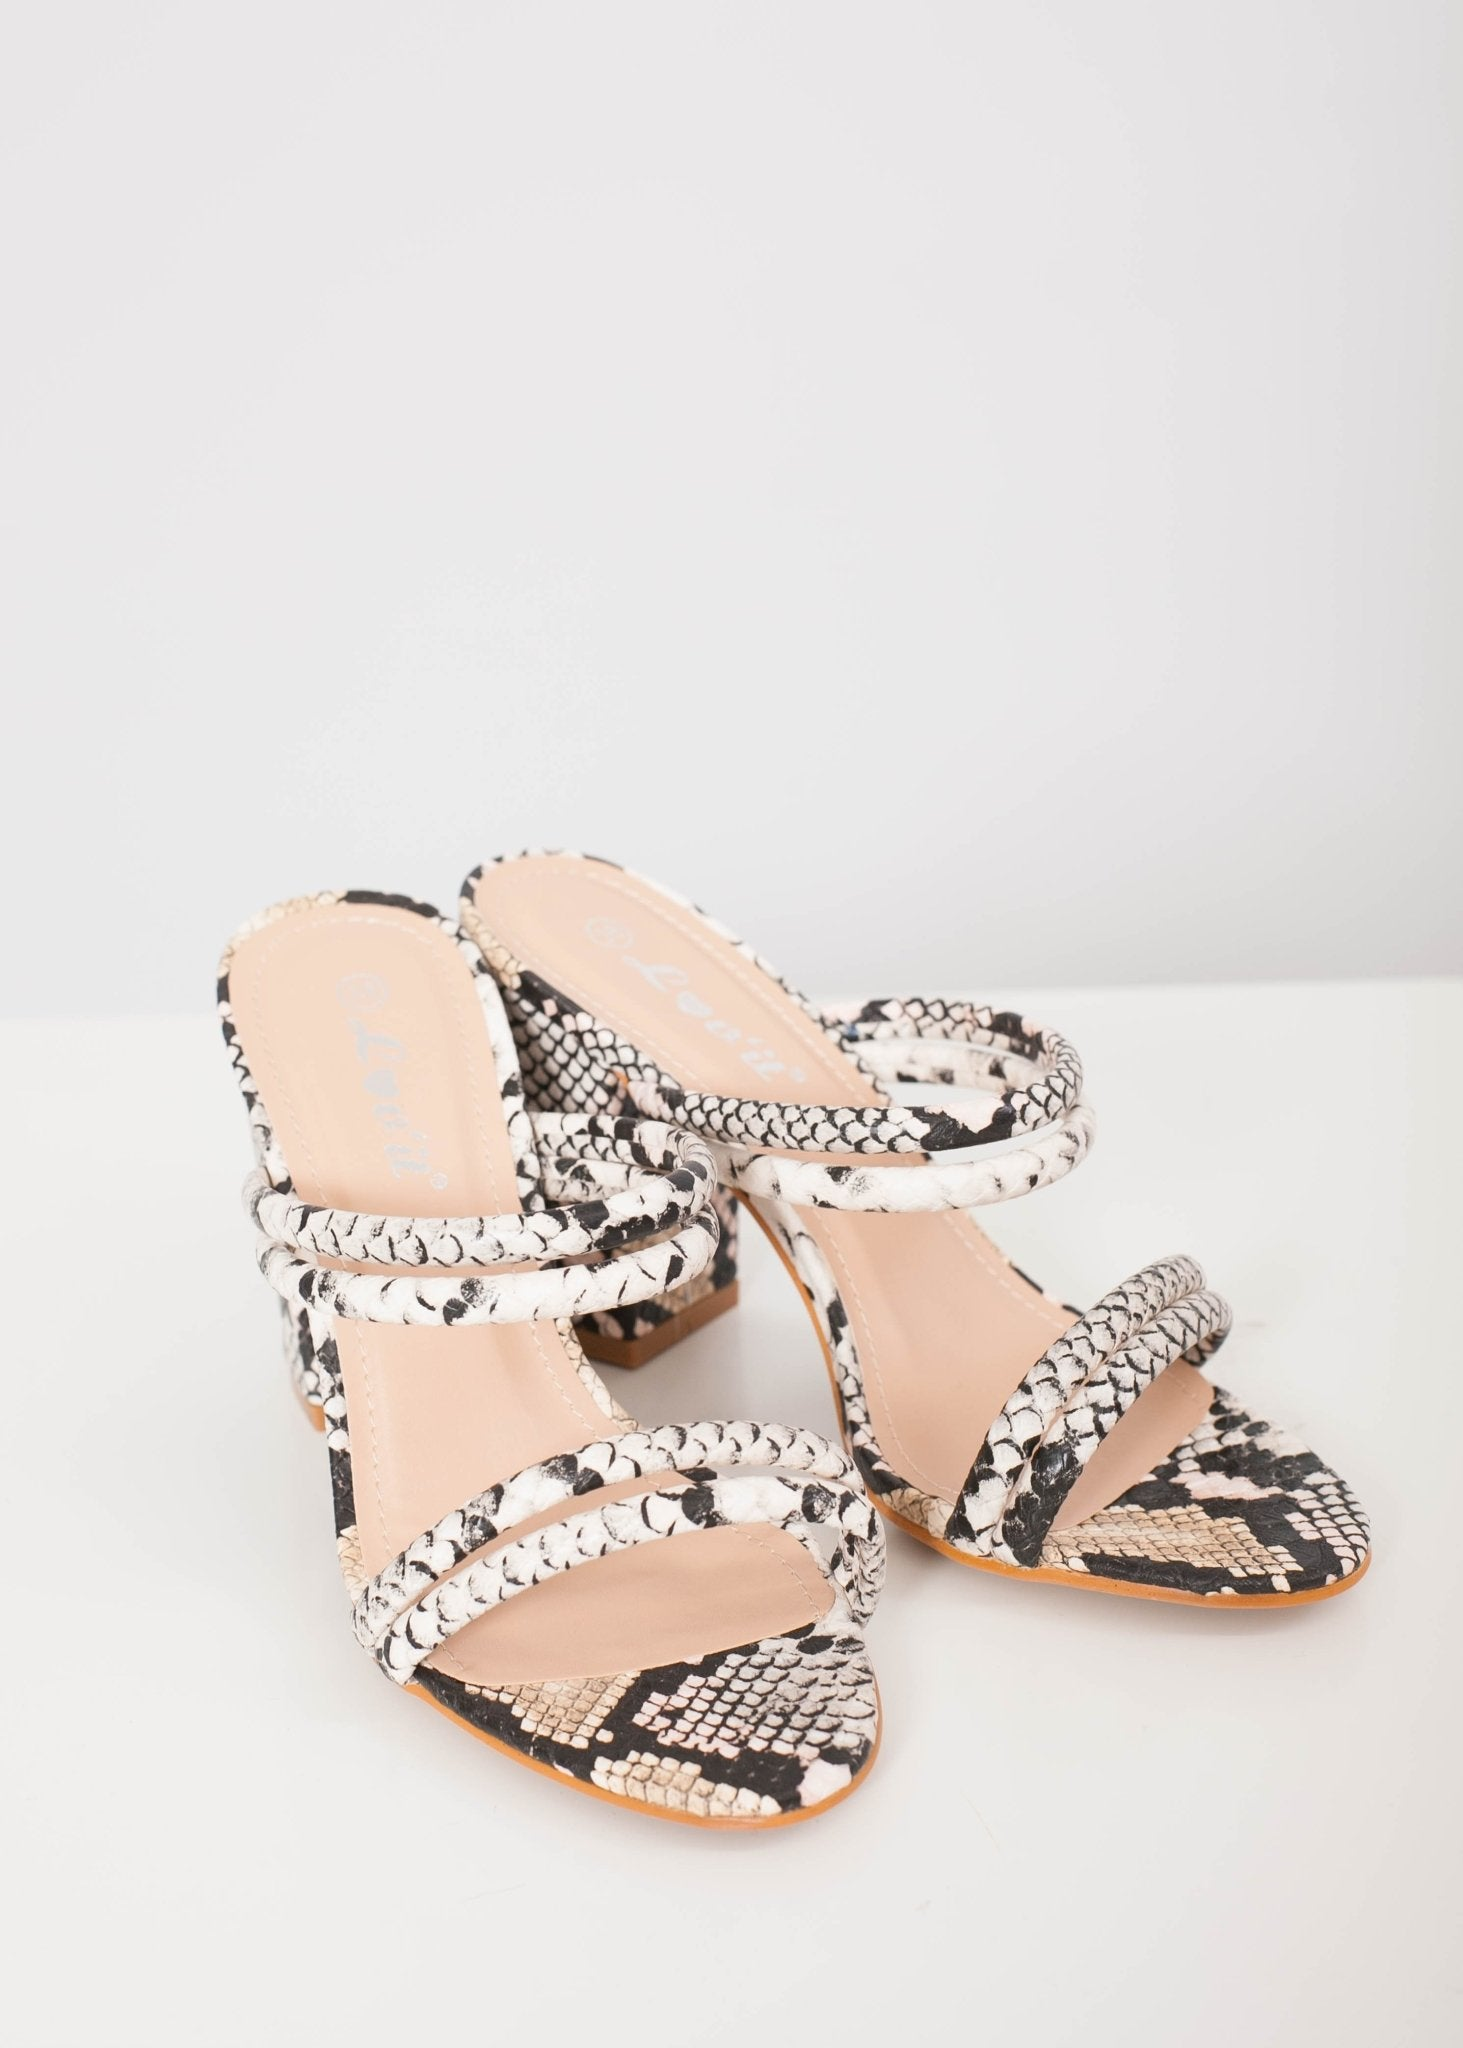 Snake Print Mules - The Walk in Wardrobe